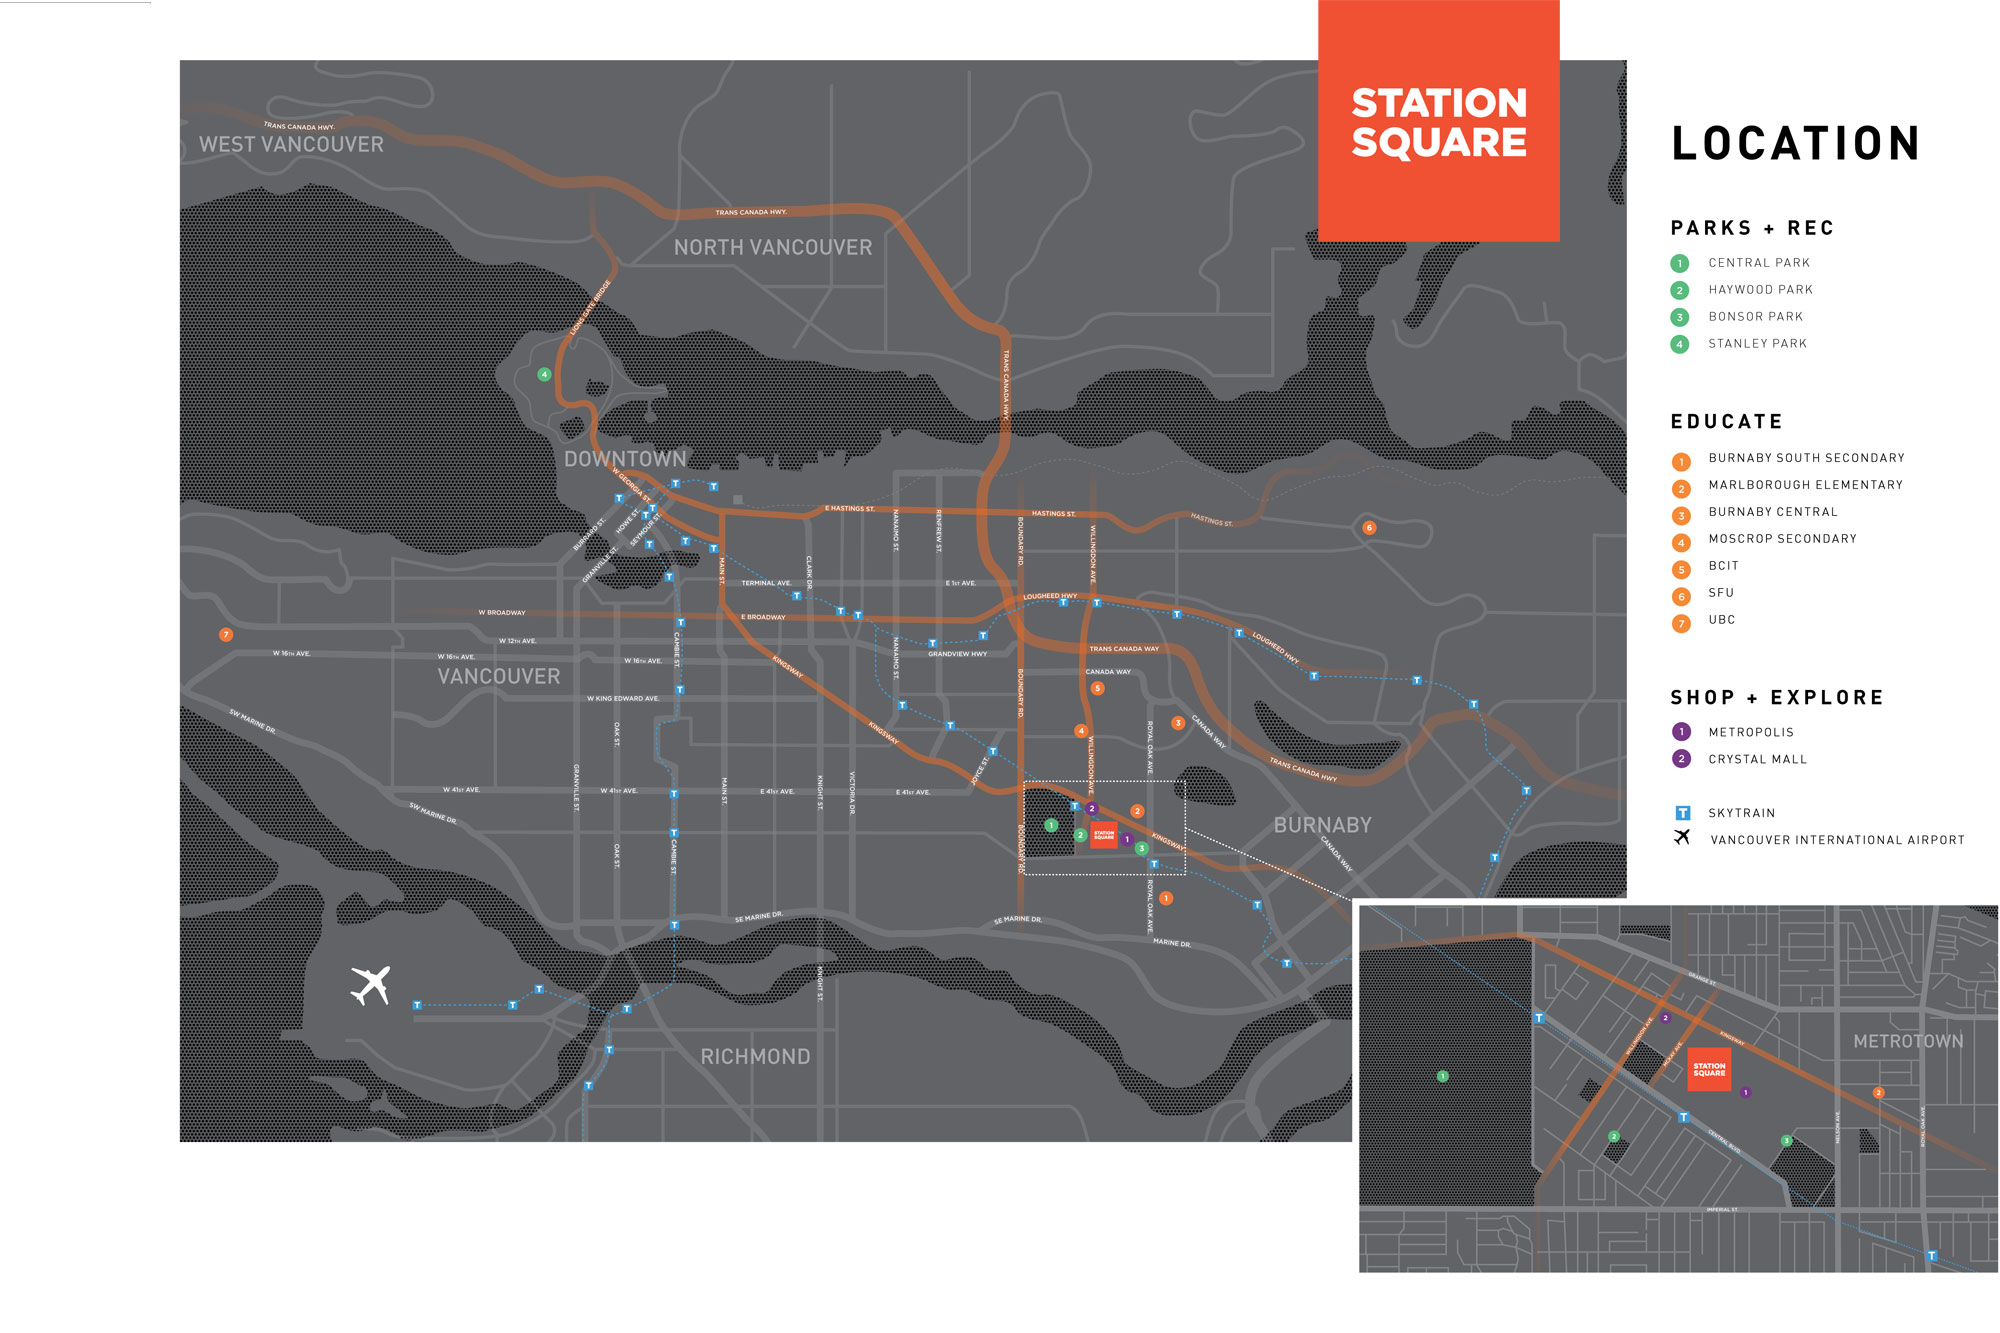 station square price floorplans burnaby metrotown new station square price floorplans burnaby metrotown new